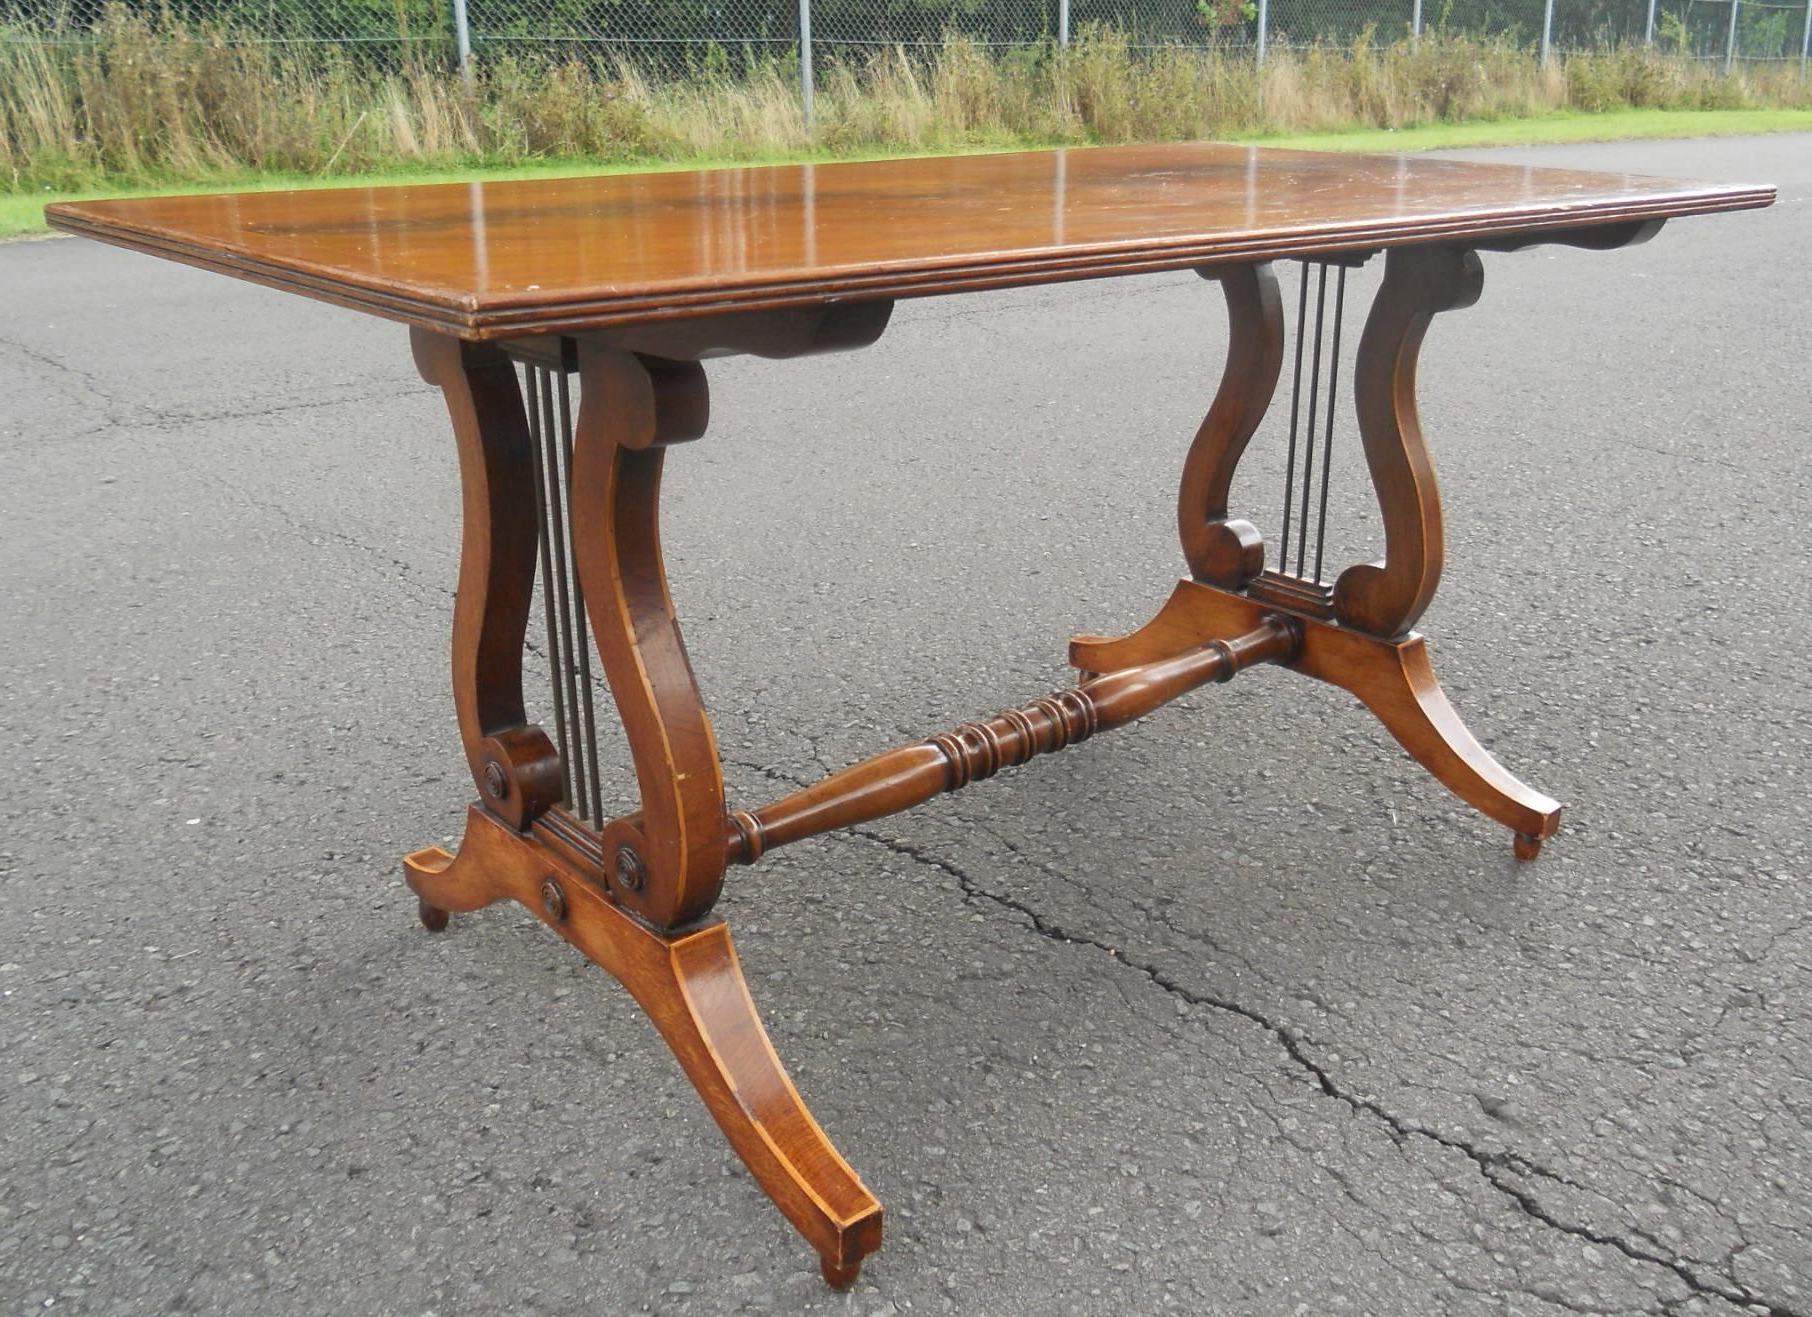 Lyre End Mahogany Rectangular Coffee Table With Favorite Lyre Coffee Tables (View 7 of 20)